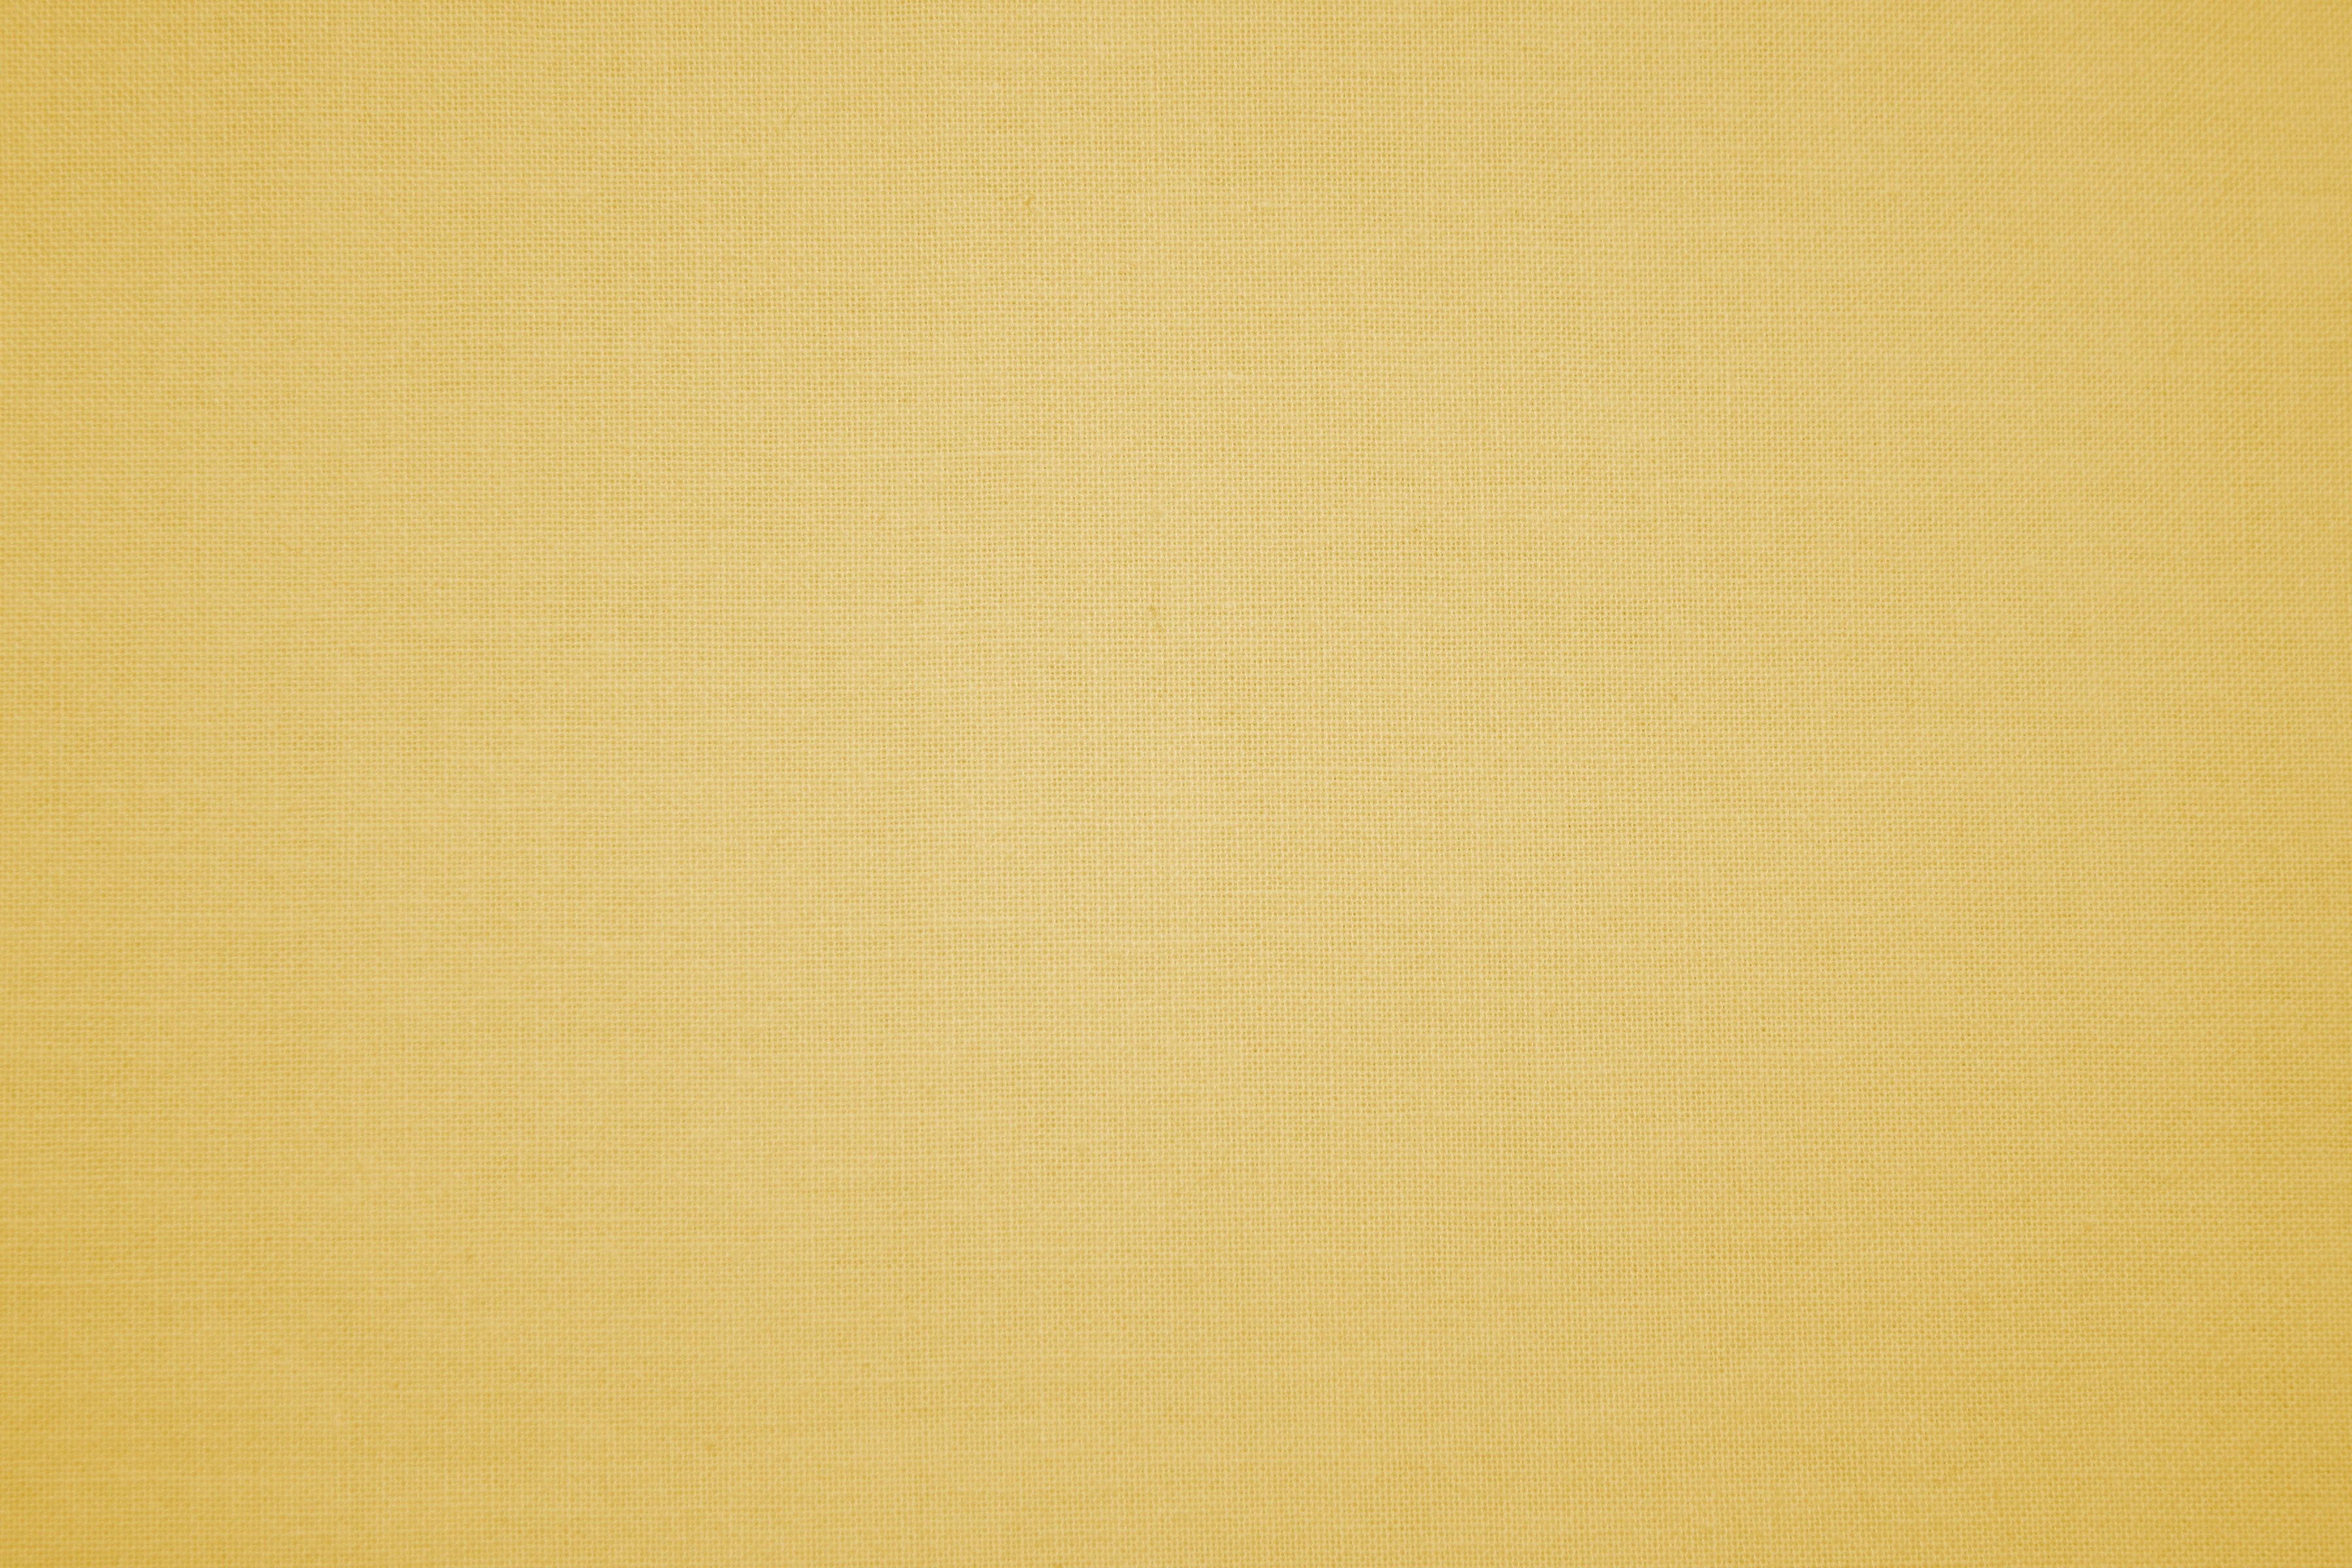 Image Gallery Light Texture Background Gold